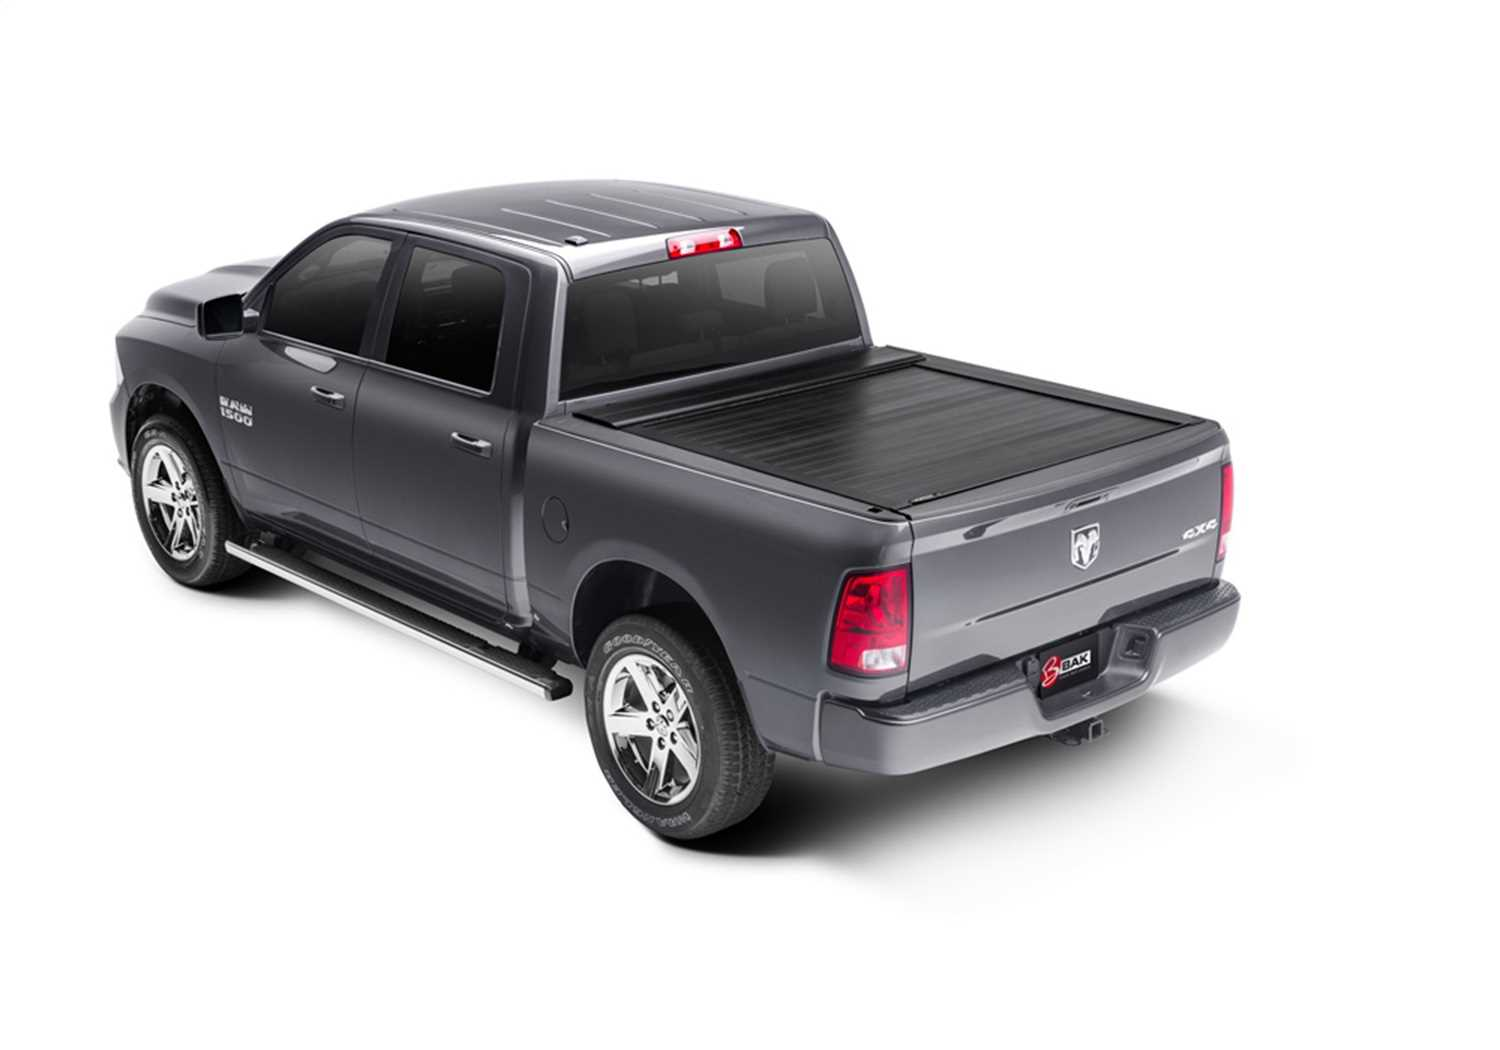 Bak Industries Vortrak Retractable Truck Bed Cover R25410T